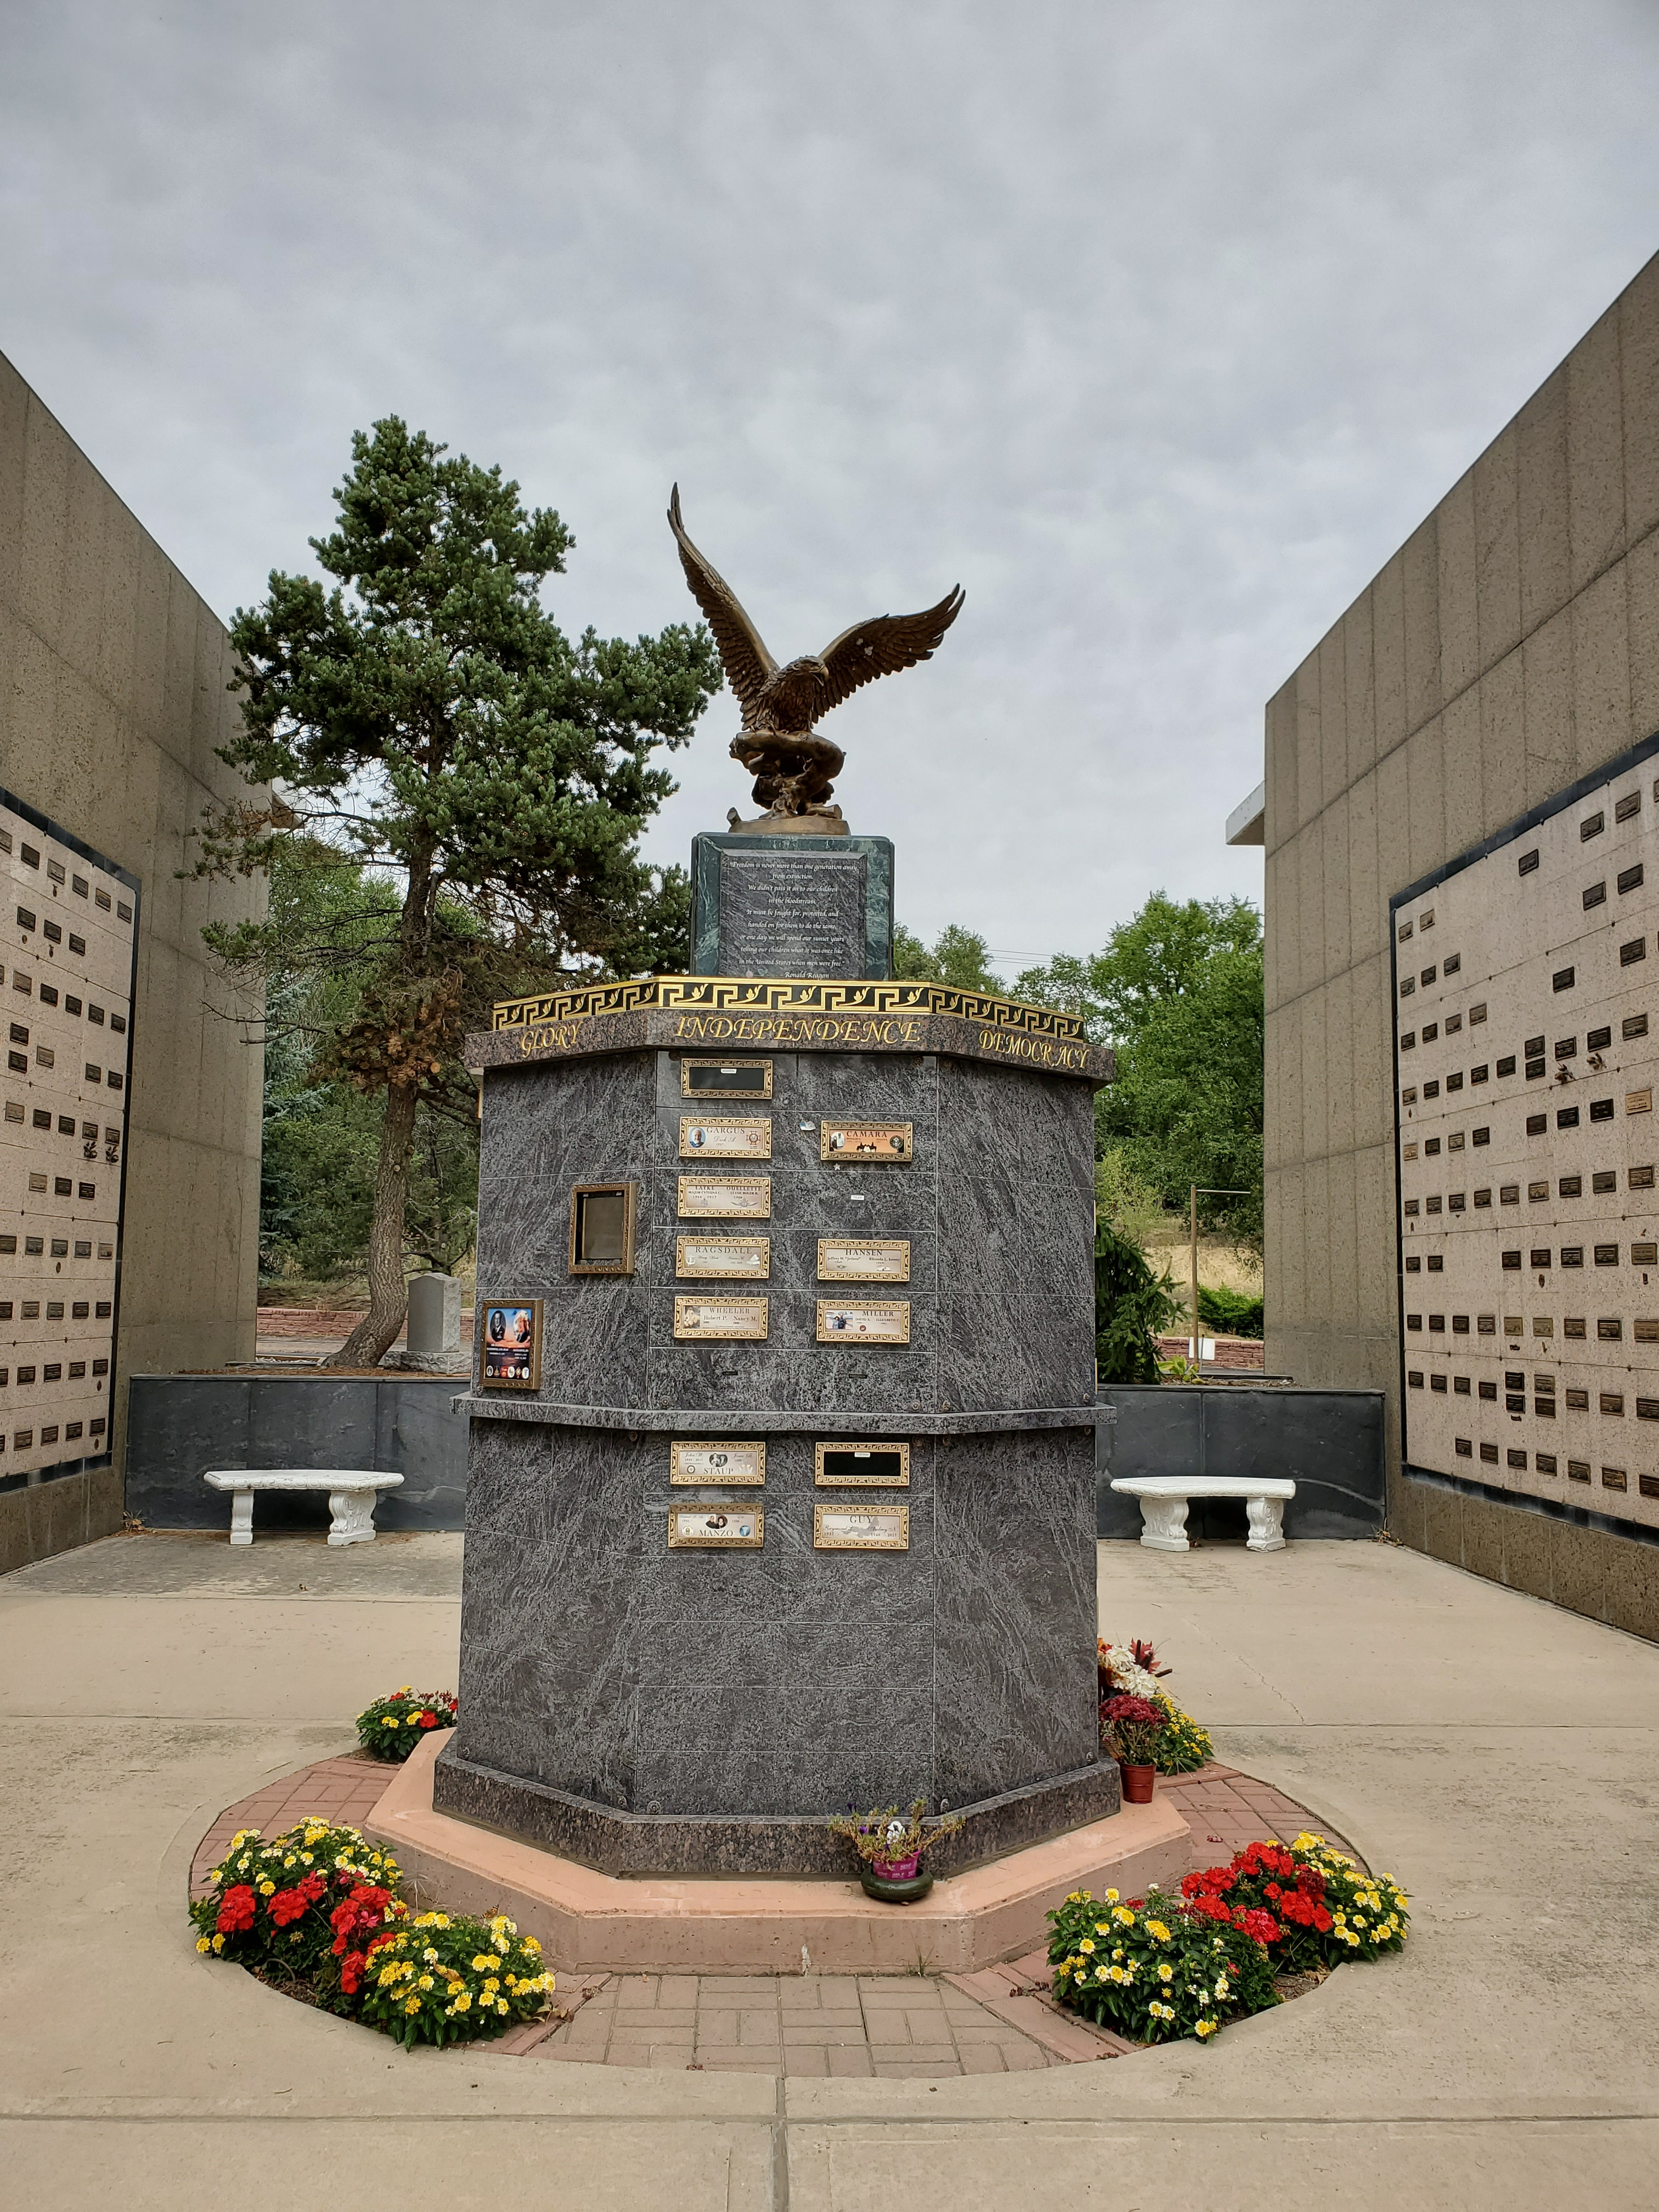 our new (eleven ton imported granite) estate Liberty Columbarium (serving veterans and their families) state of the art bronze plaques for memorialization with personalized photographs